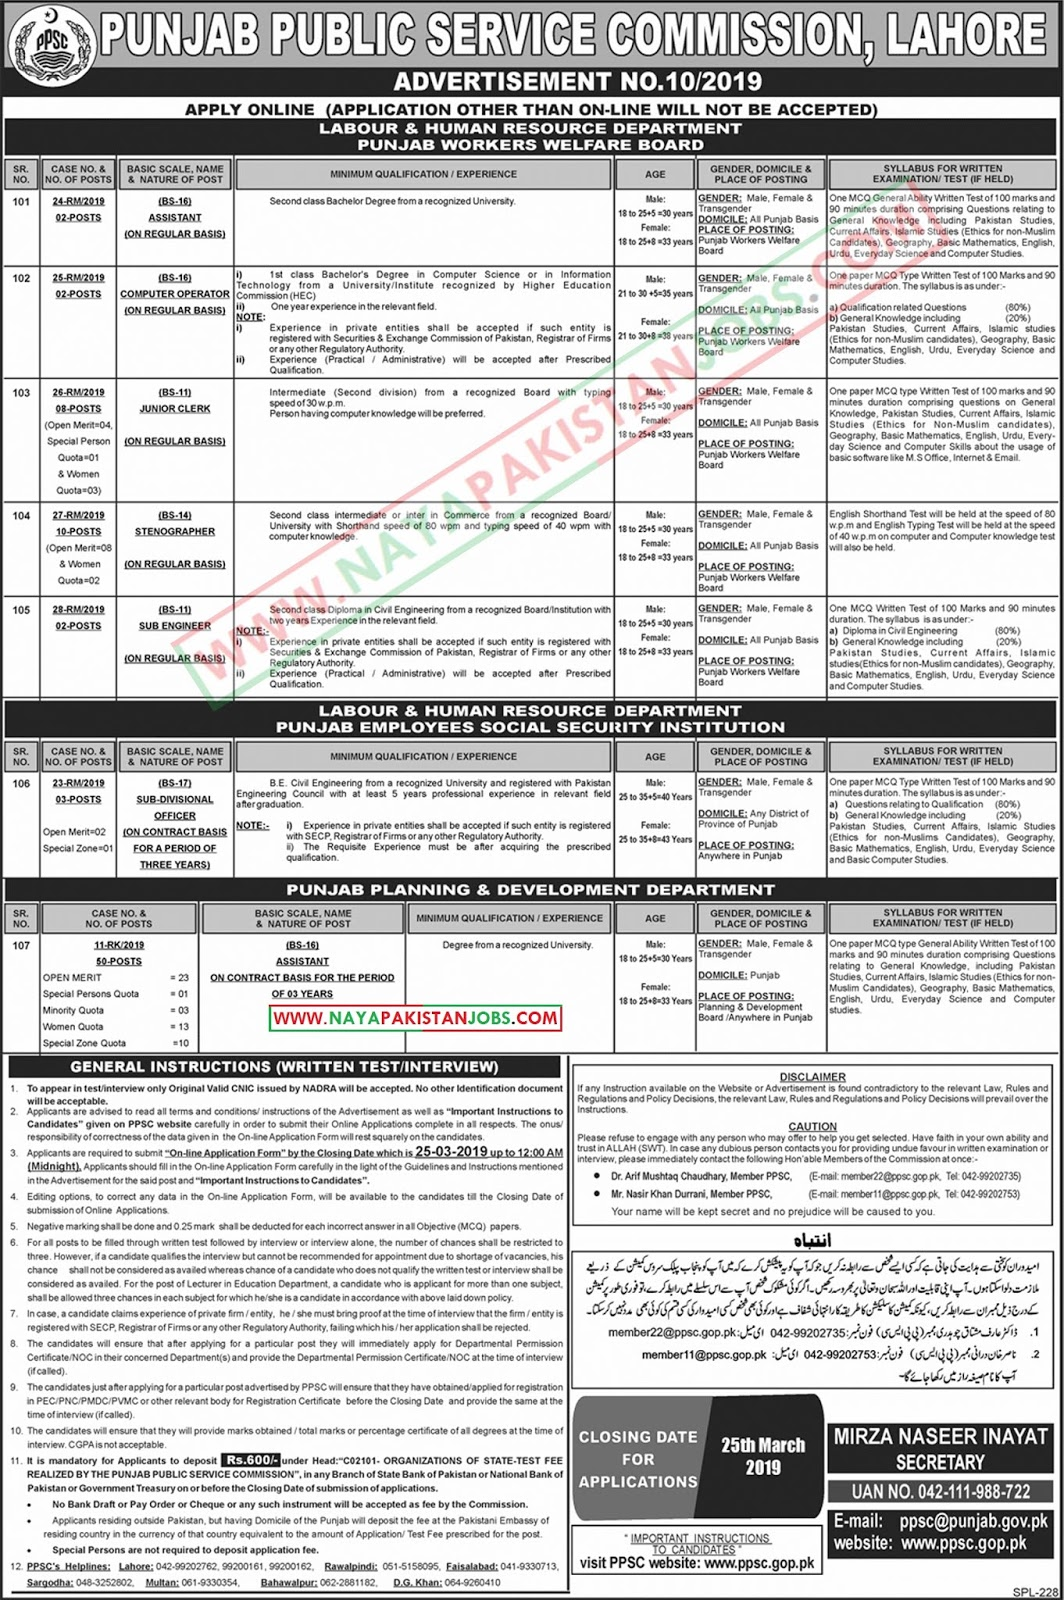 PPSC Jobs 2019, ppsc jobs ad no 10, PPSC Jobs 2019 Advertisement No 10 Punjab Public Service Commission